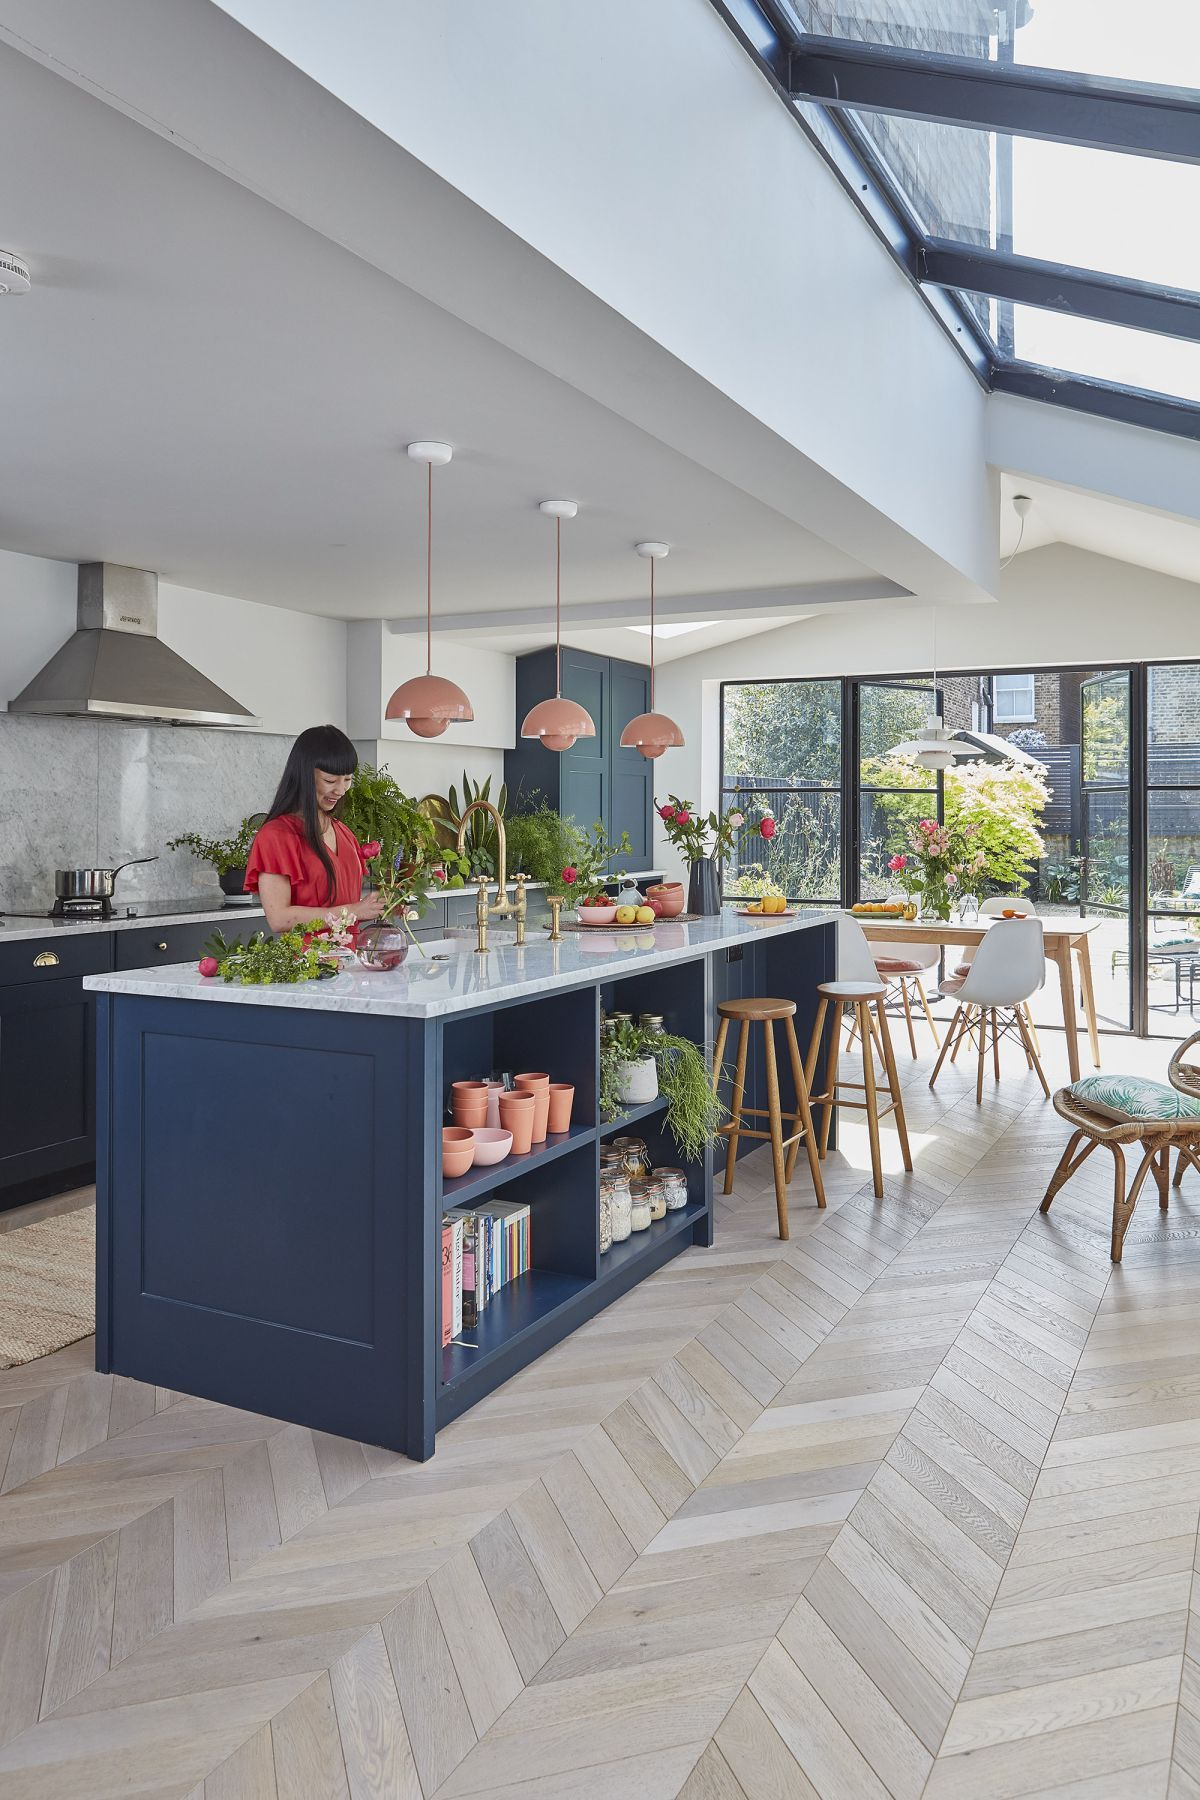 Real home: a Victorian mid terrace gets a striking open-plan kitchen extension